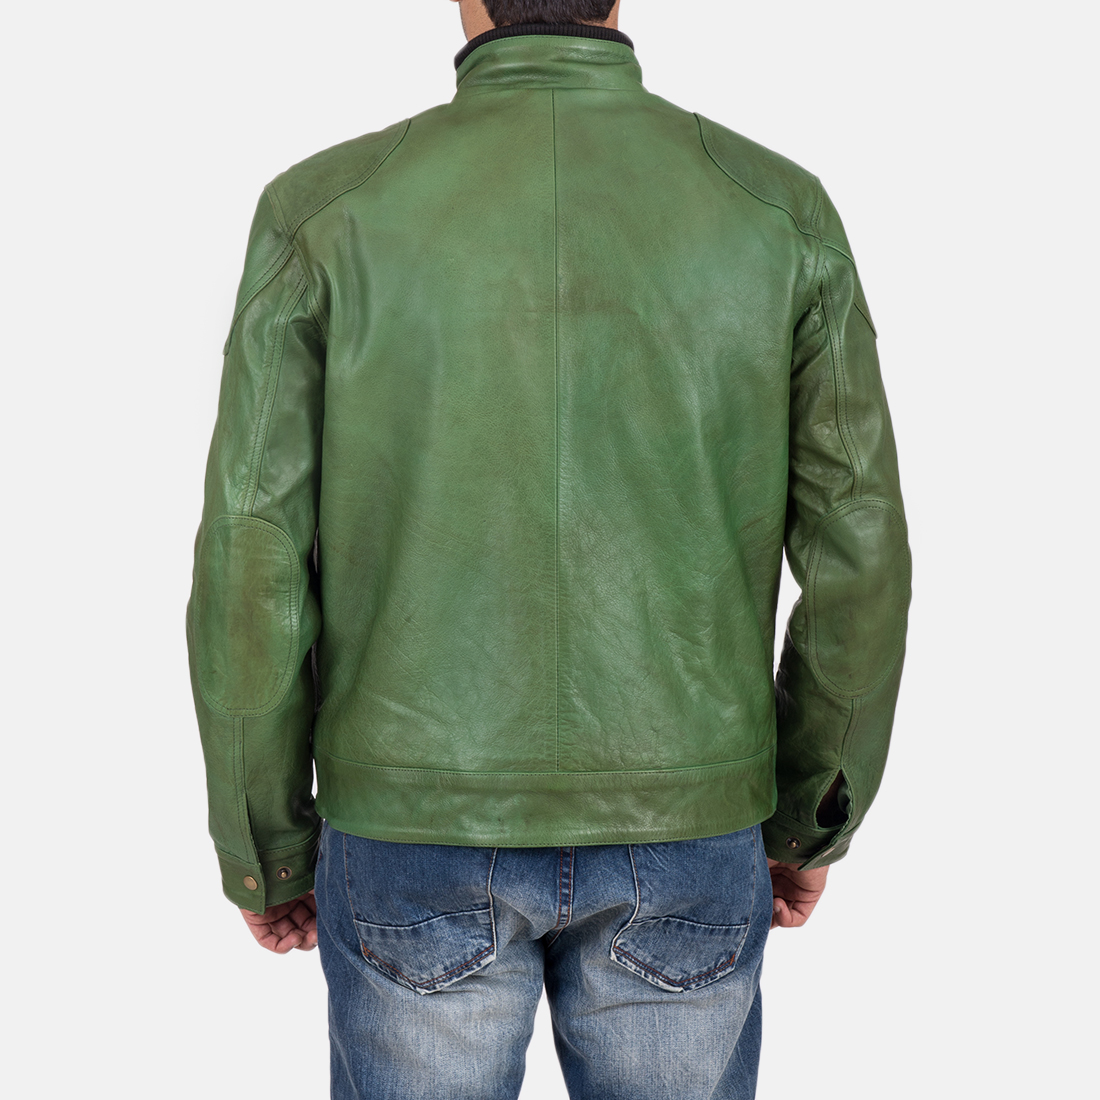 Men's Krypton Distressed Green Leather Jacket 7